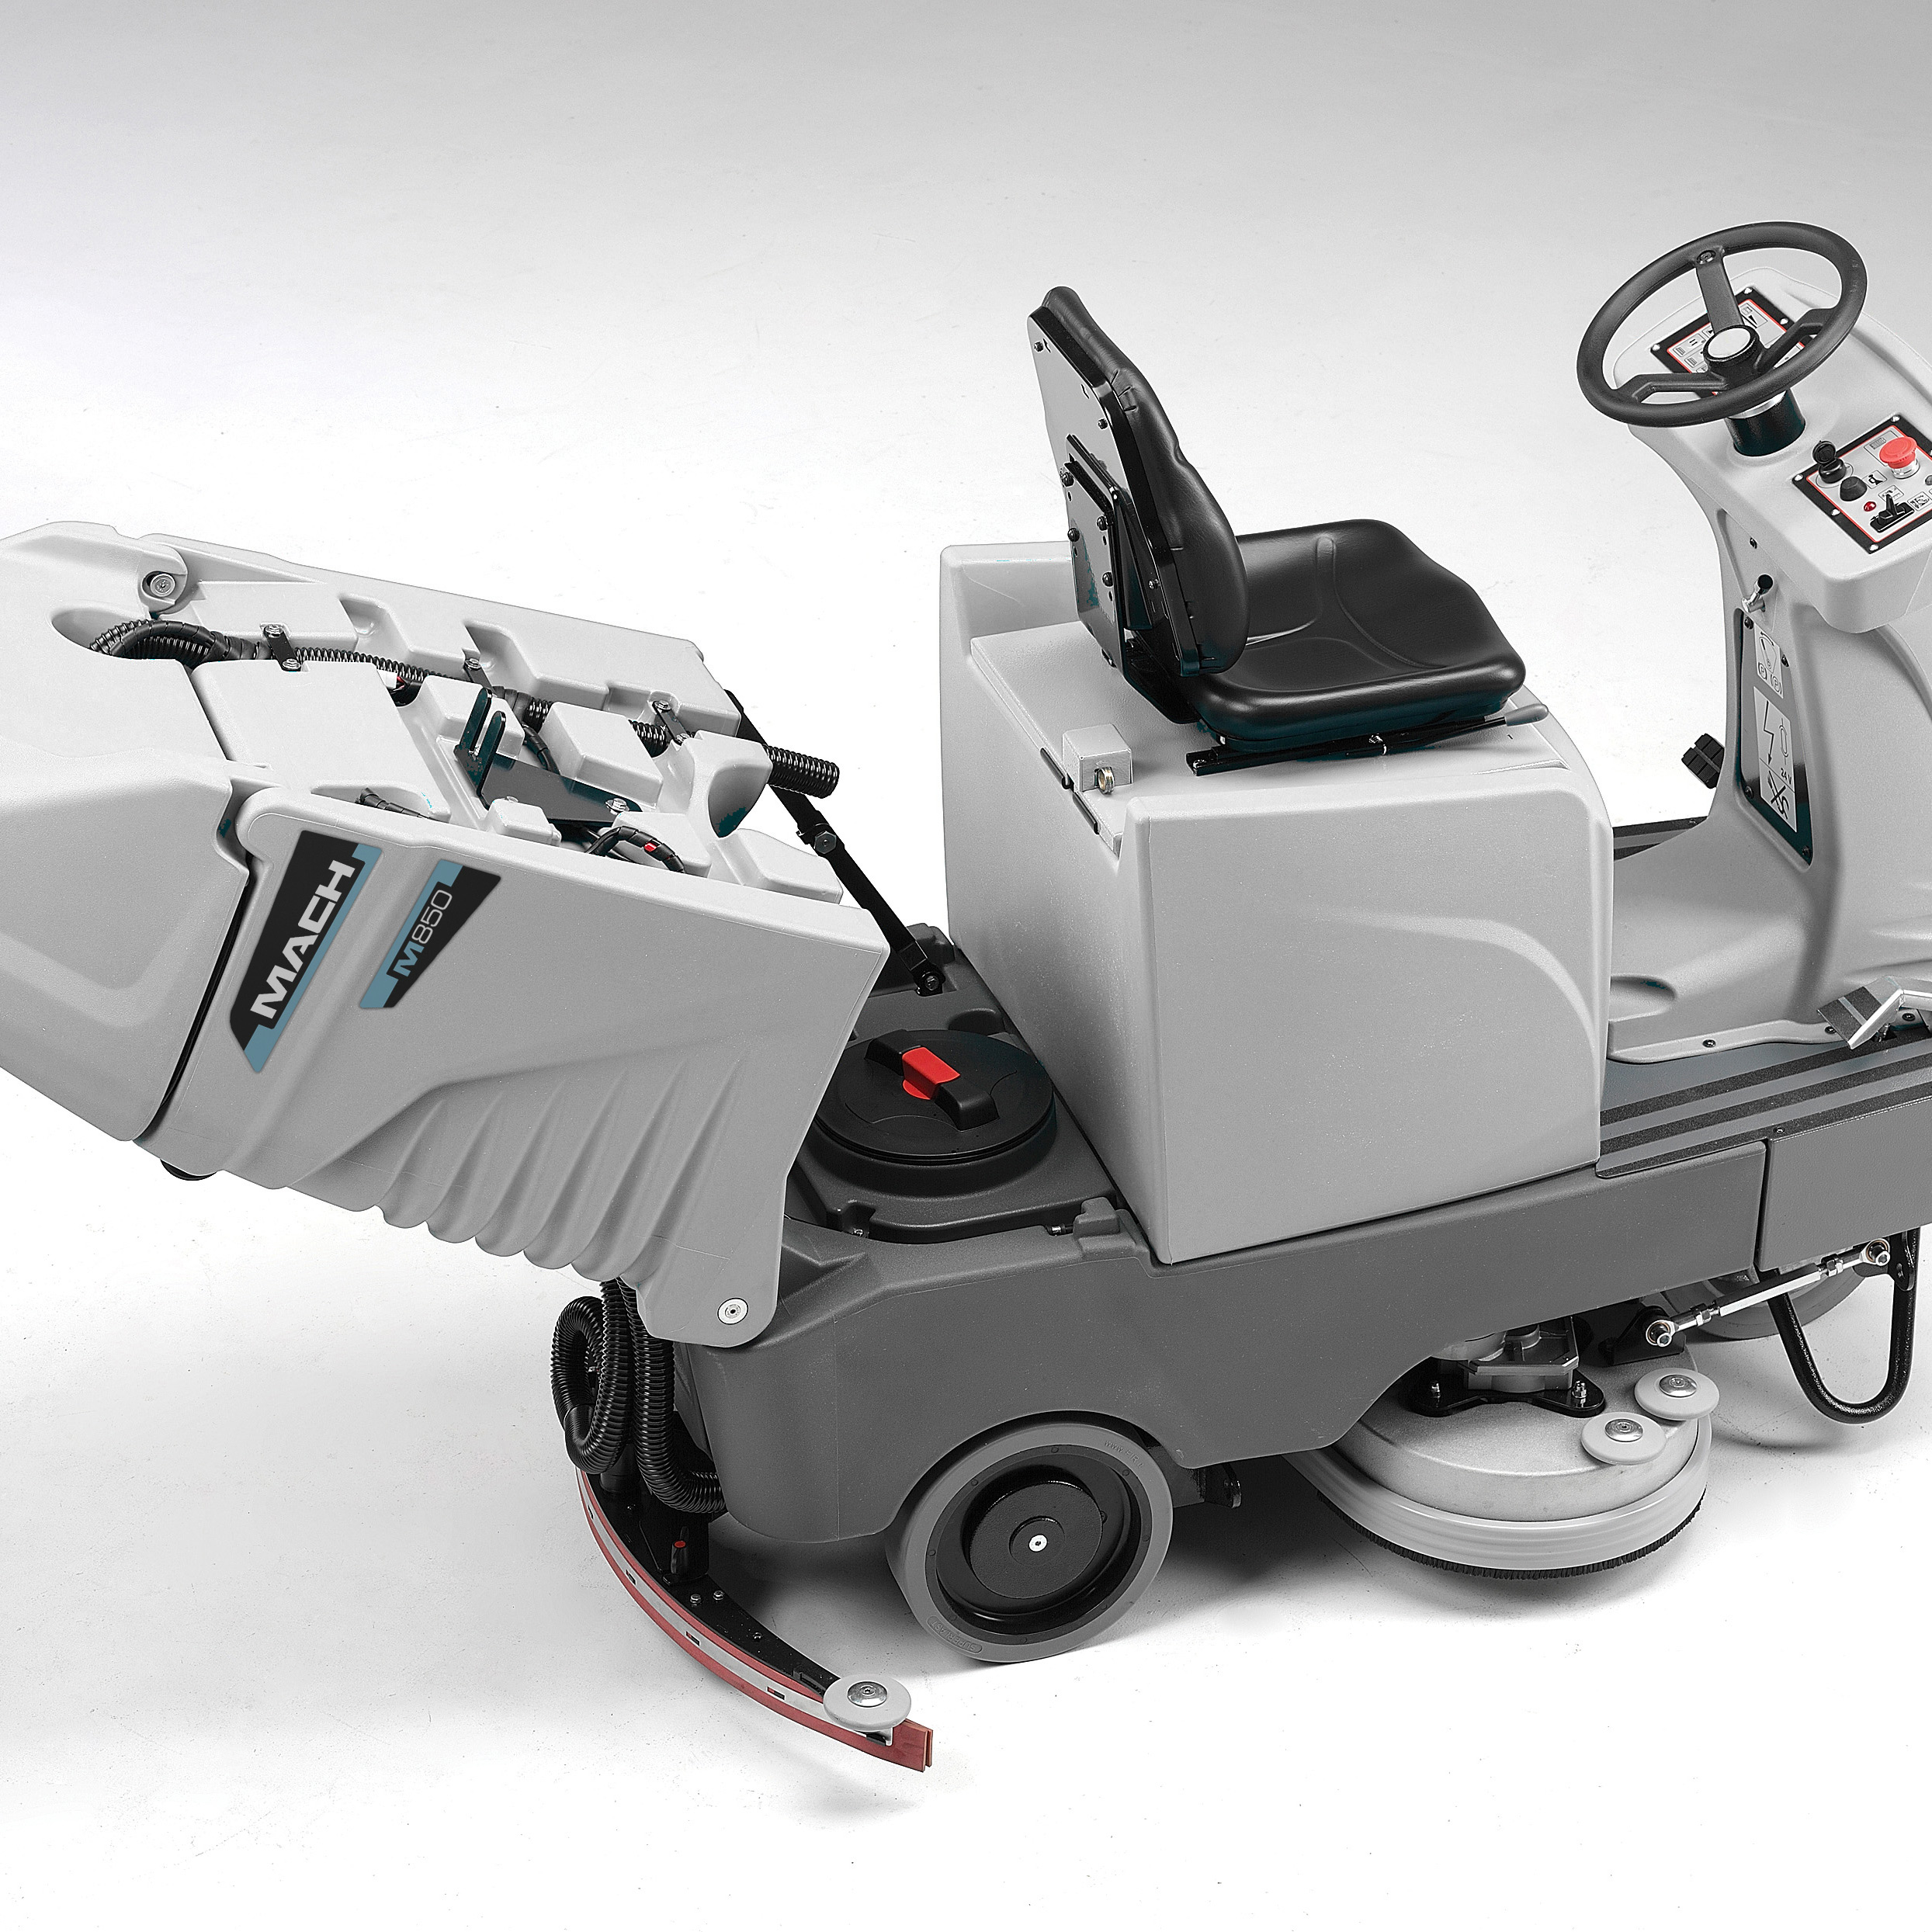 MACH M830 RIDE ON SCRUBBER WITH HIGH CAPACITY SOLUTION TANK MAXIMISES UP TIME